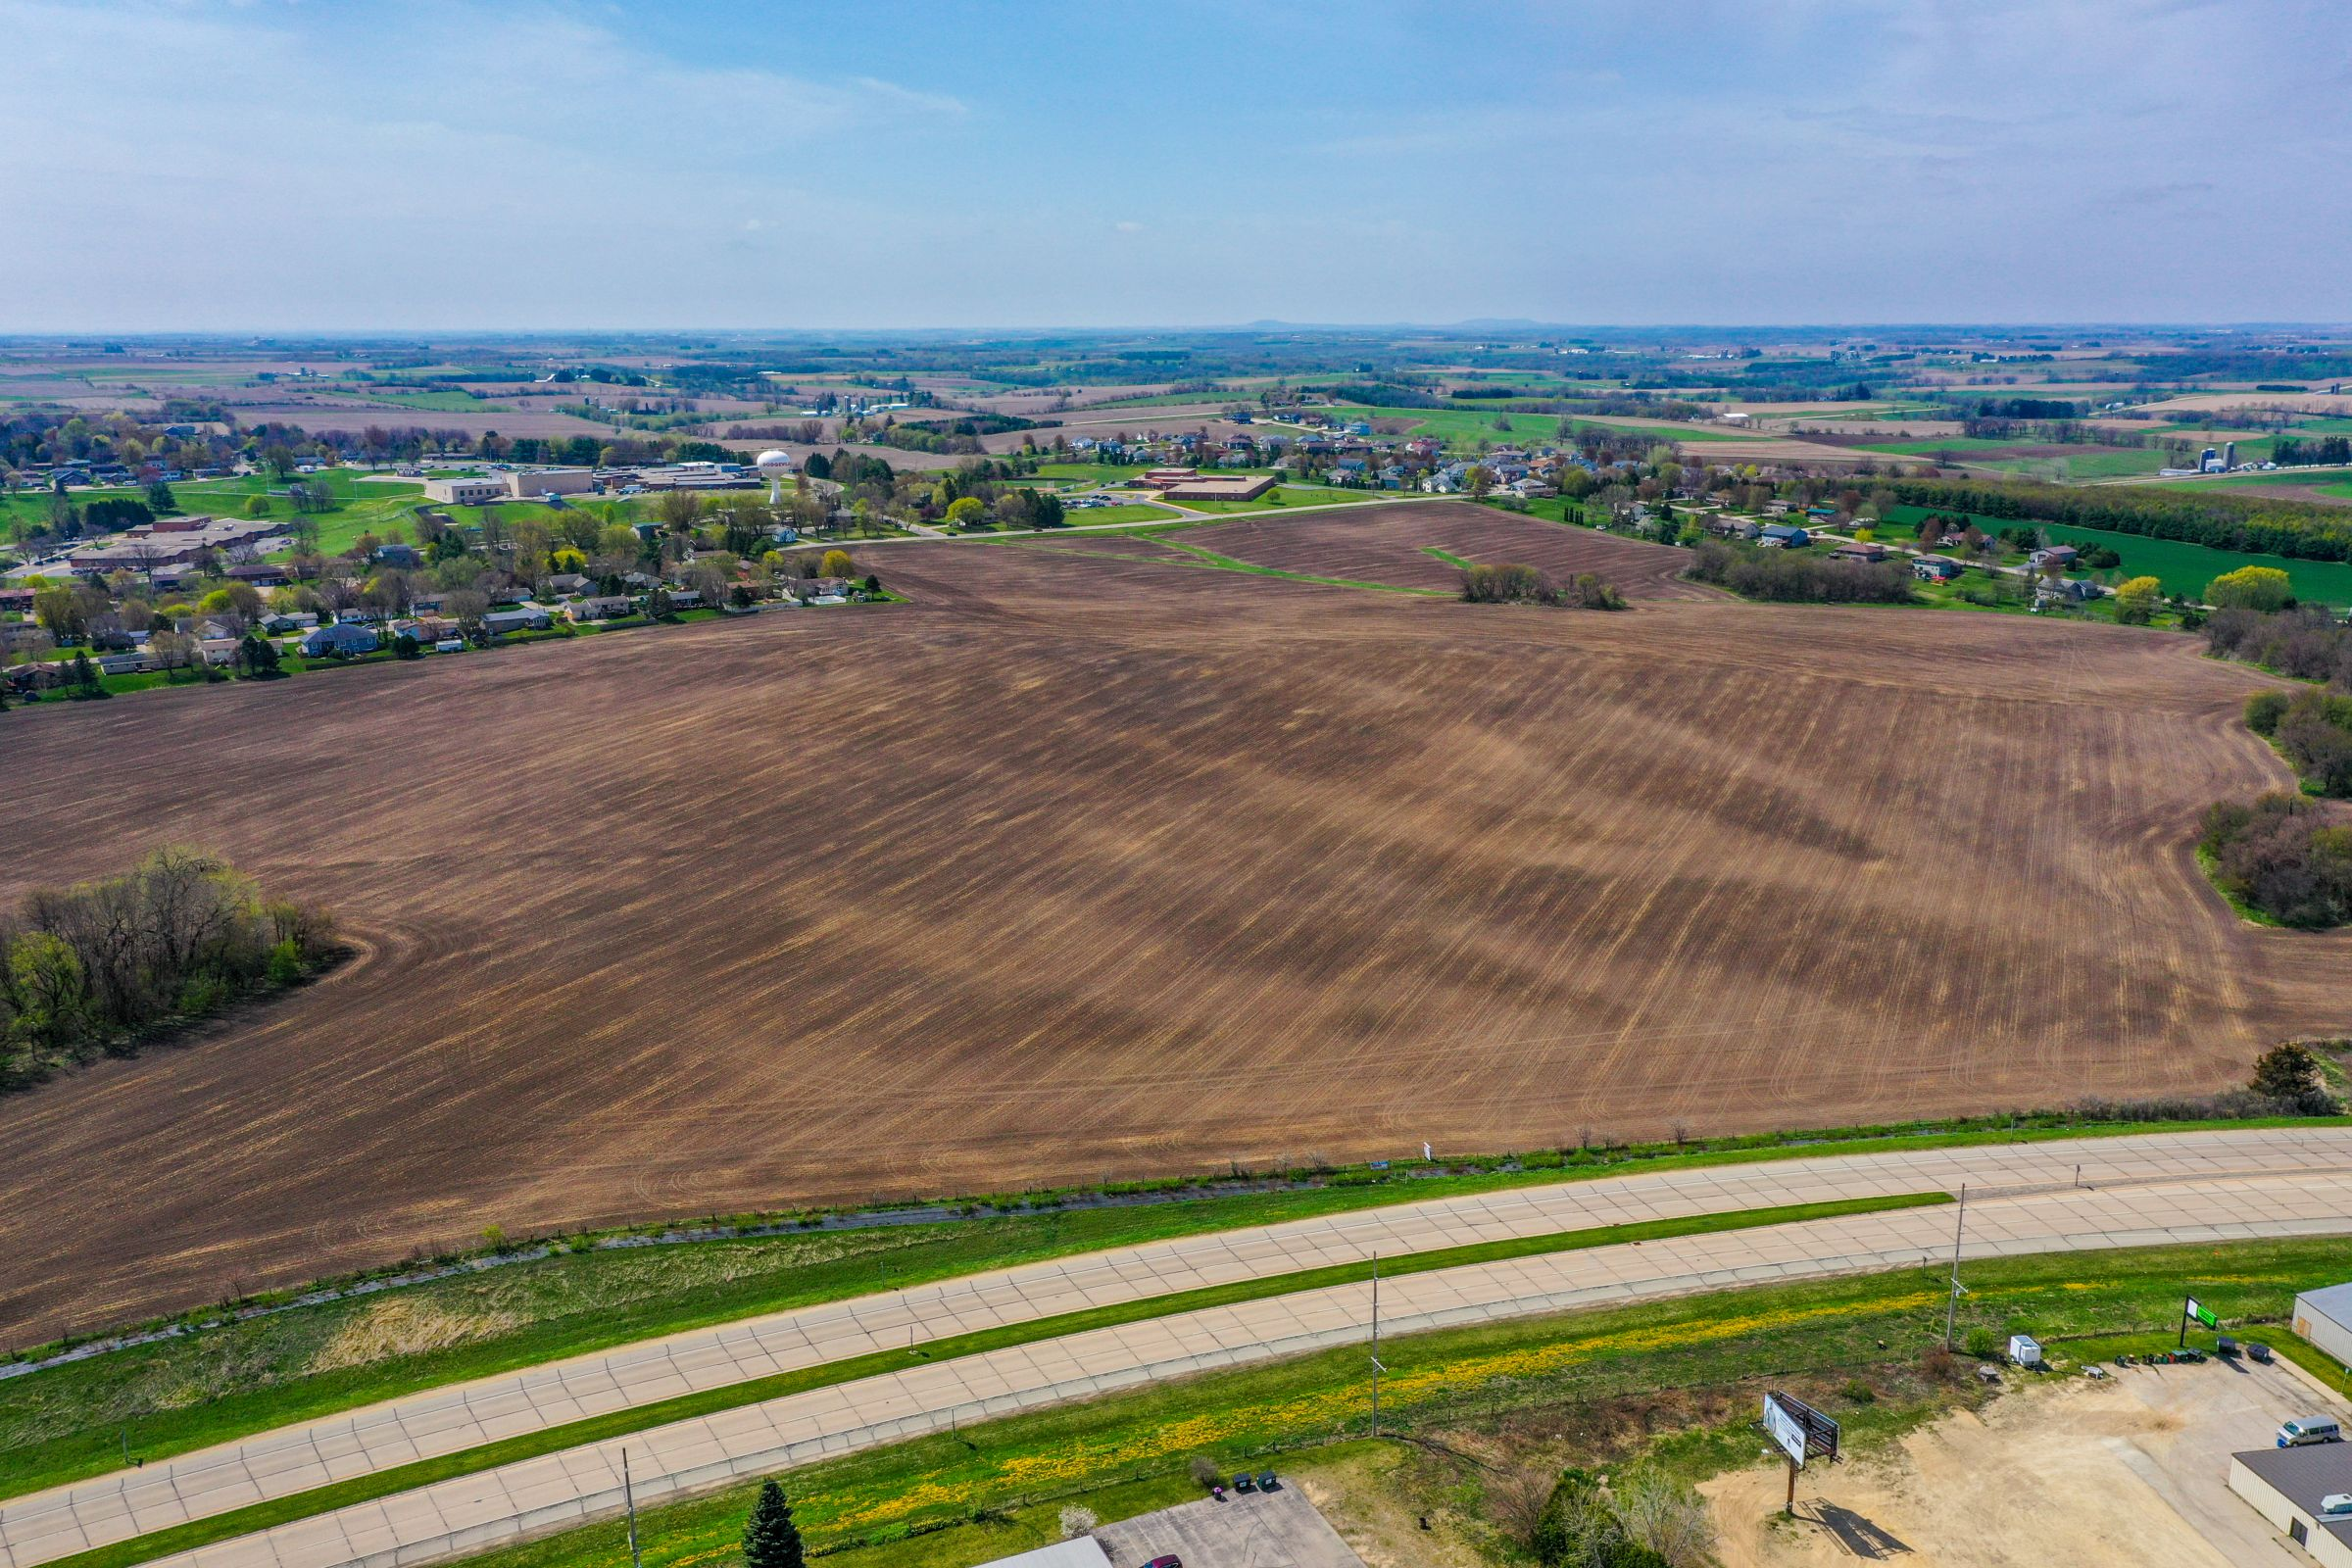 development-land-commercial-iowa-county-wisconsin-152-acres-listing-number-15474-3-2021-05-18-163549.jpg